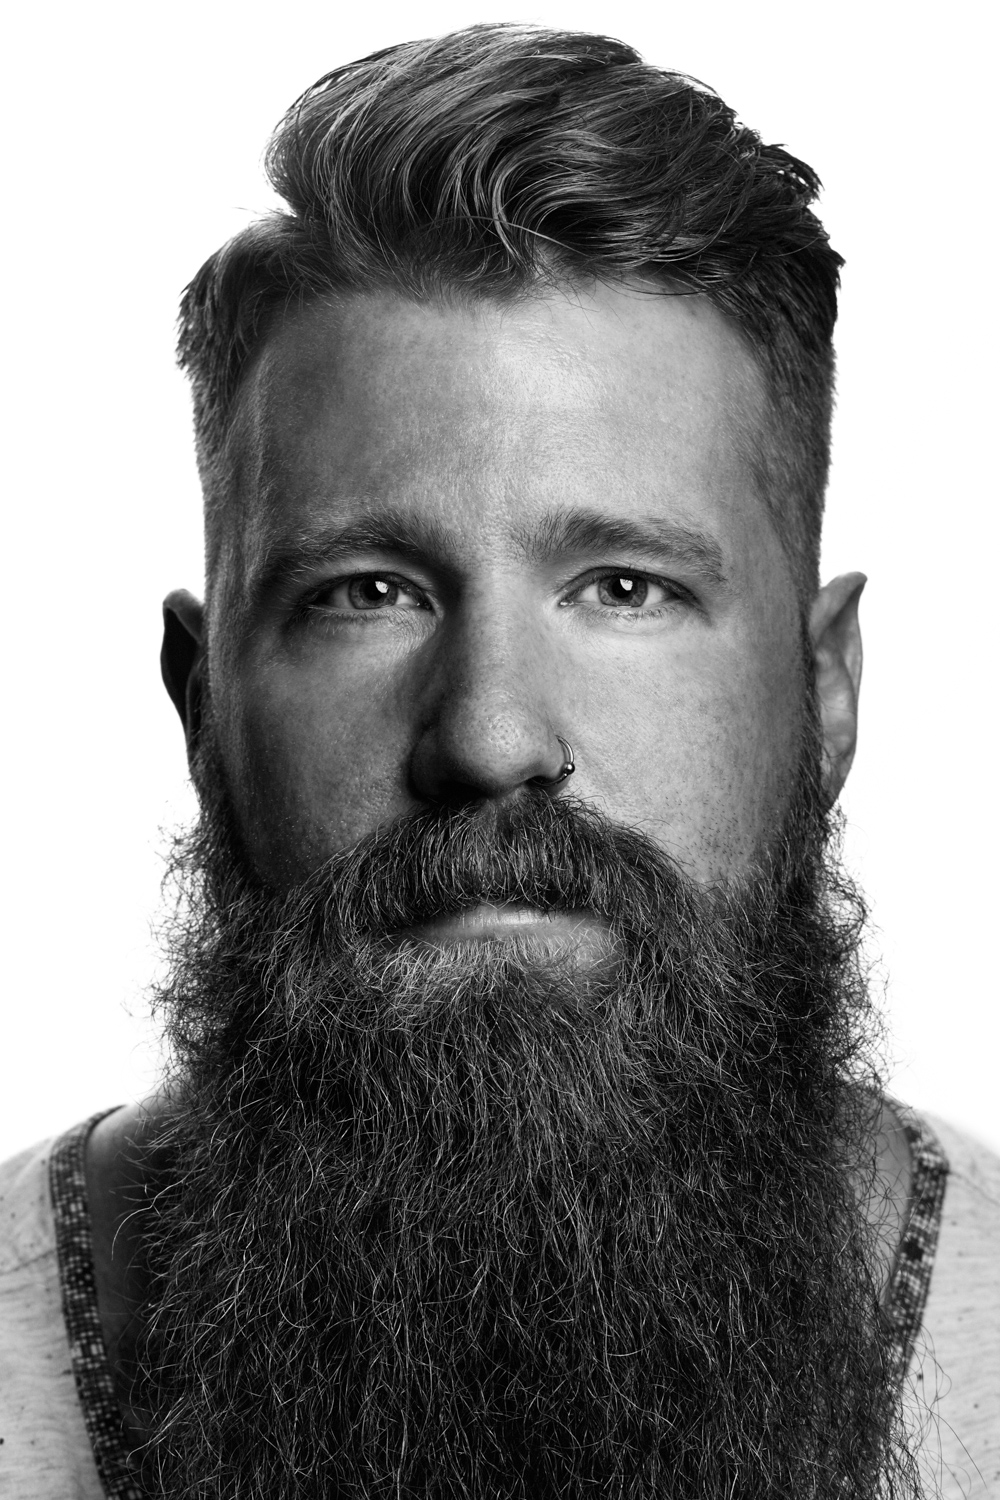 Man on white background, studio photography, black and white portraits, hipster with beard, hipster with tattoos